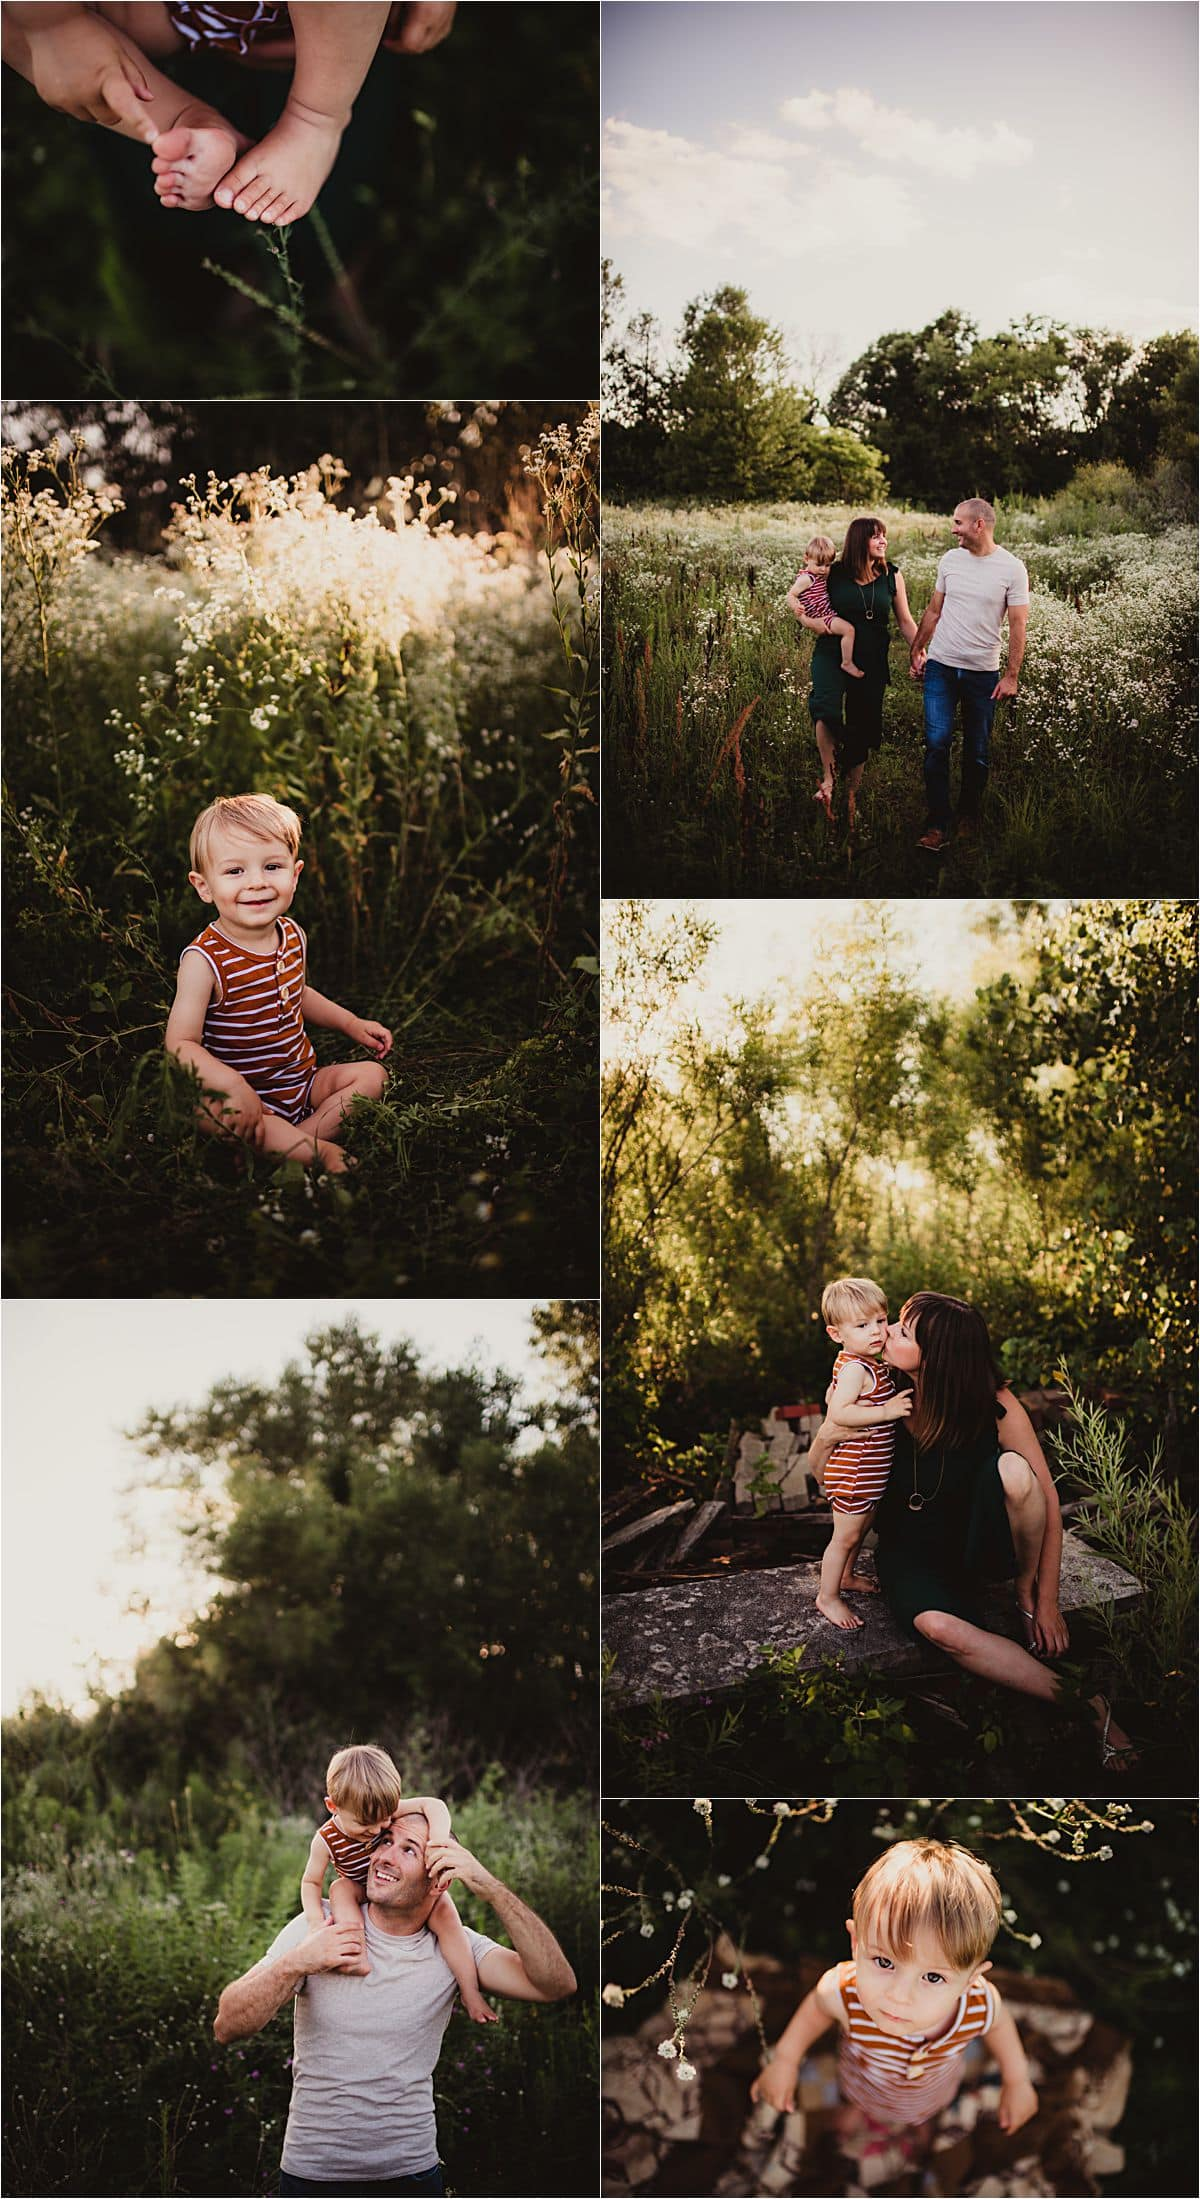 Summer Urban Wildflower Session Collage Parents with Son